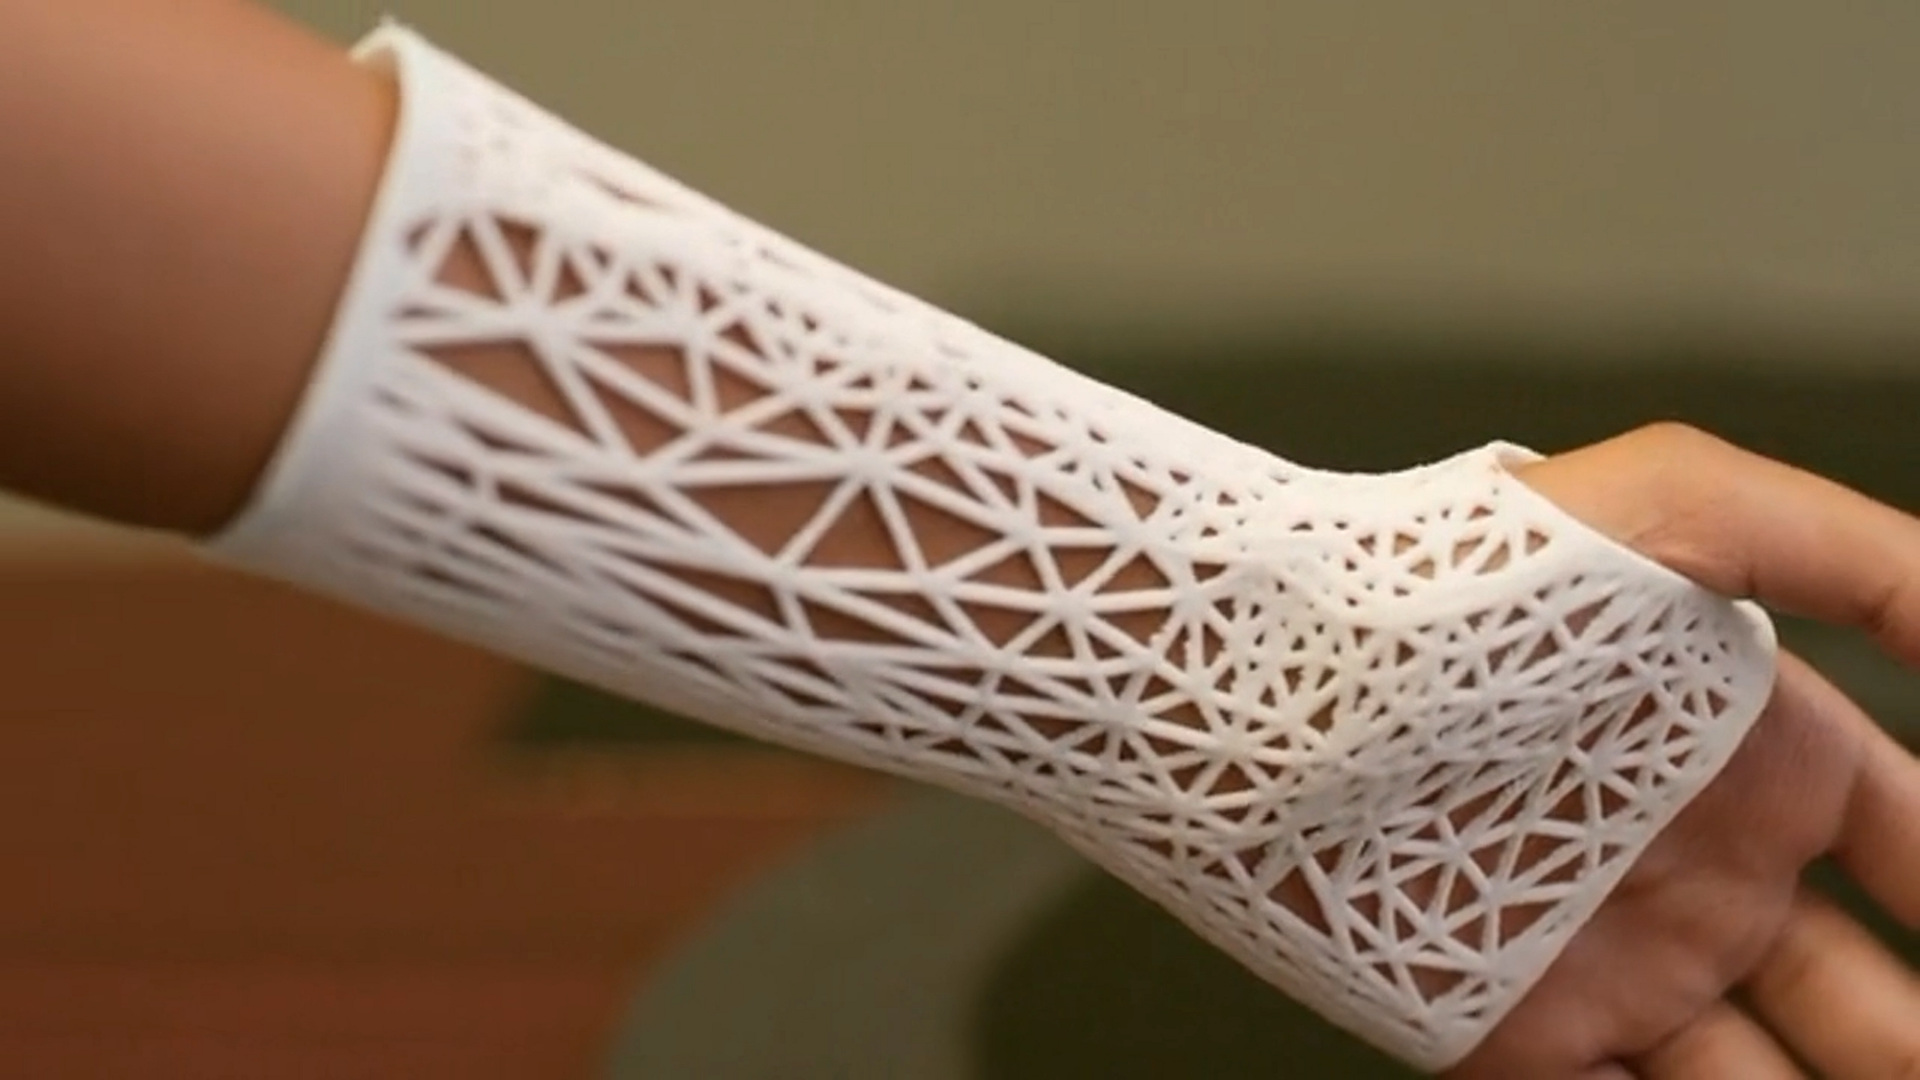 A 3D printed arm cast by PrinterPrezz. Image via PrinterPrezz